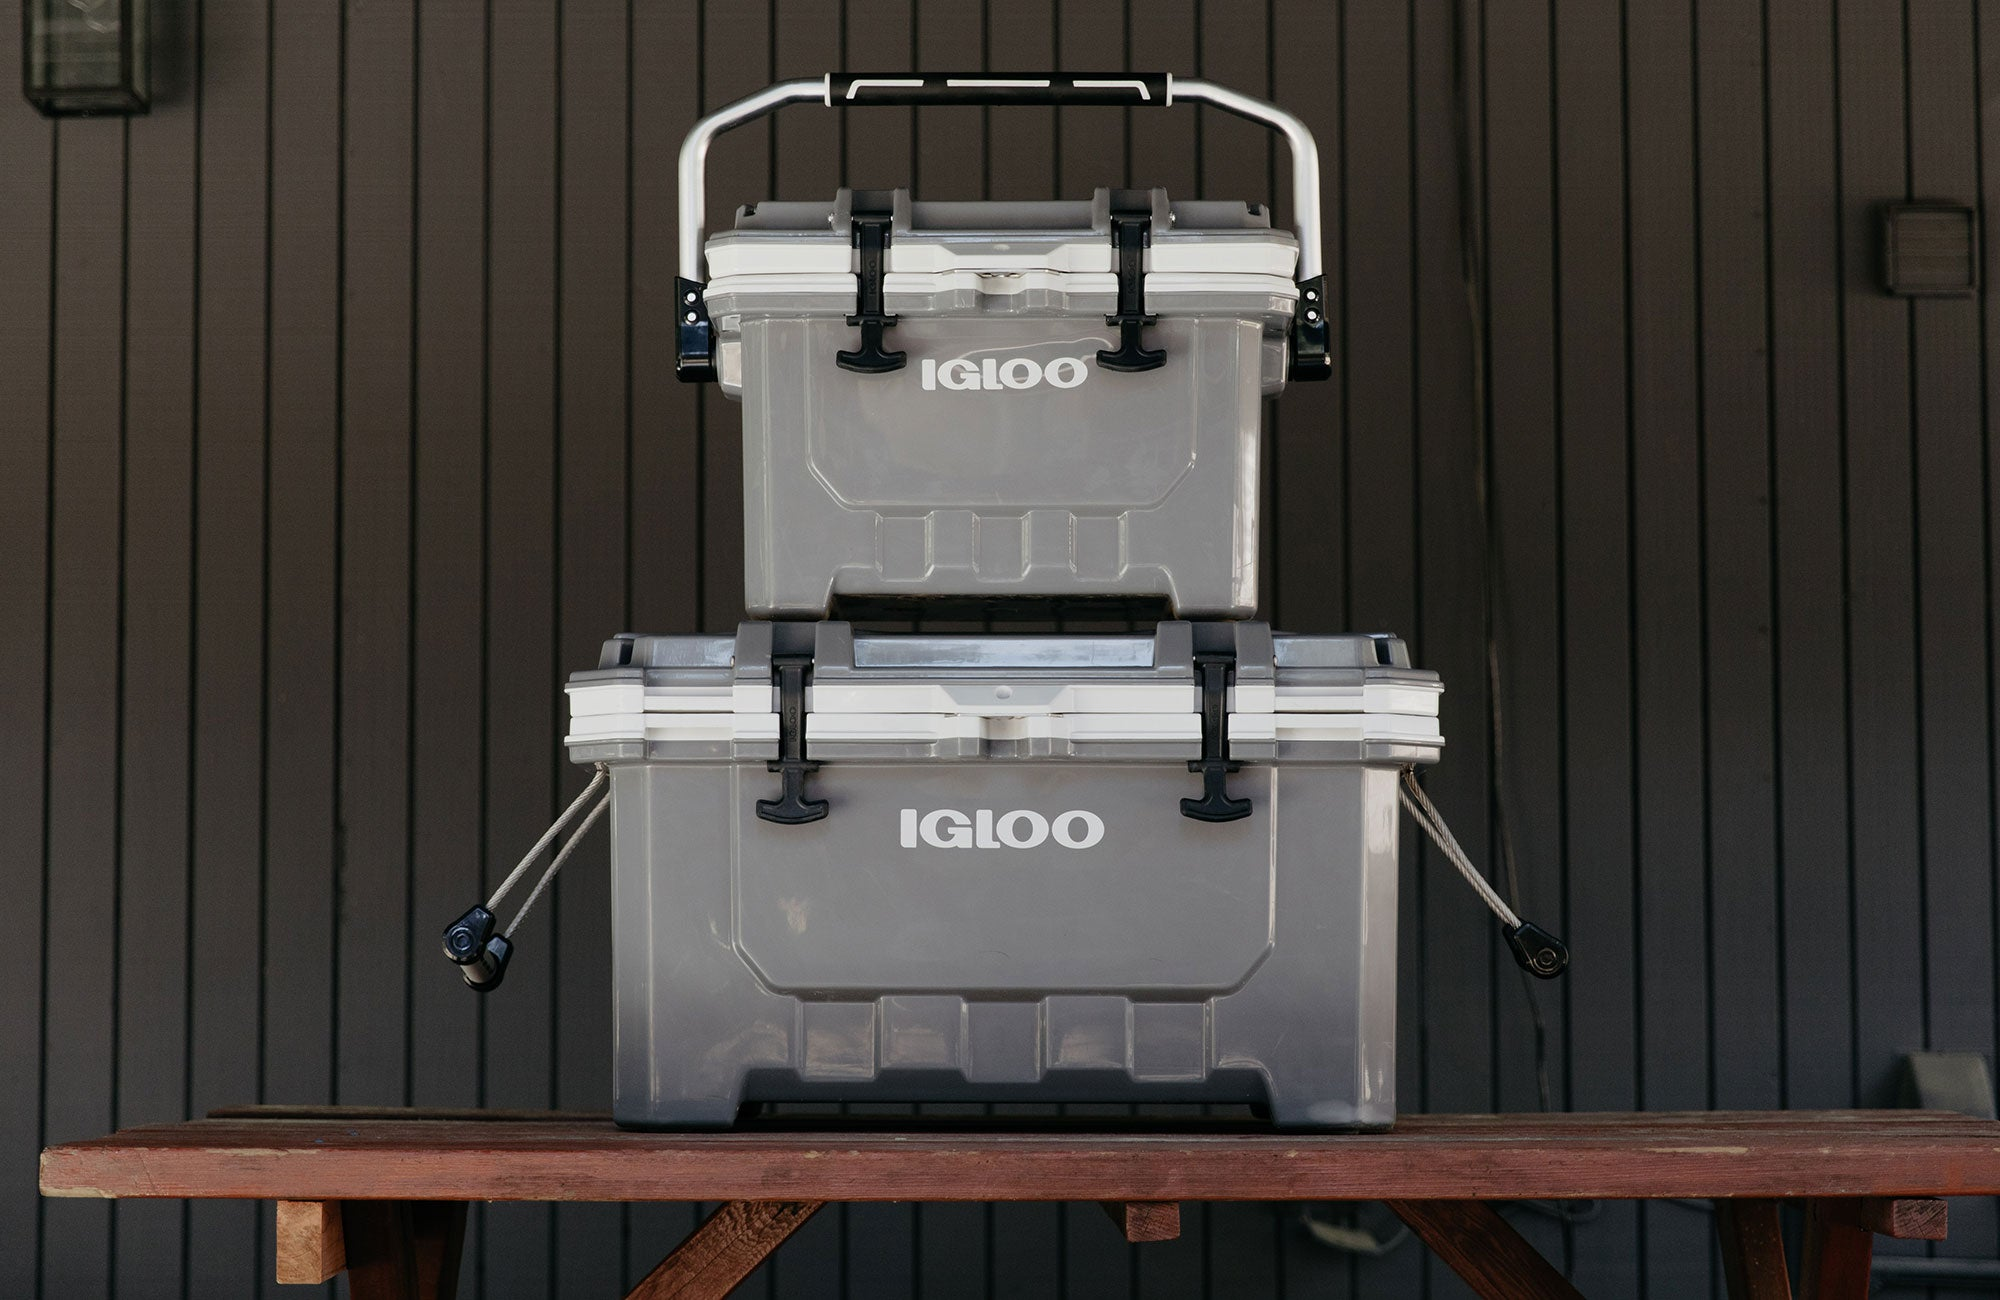 IMX Coolers 70-quart and 24-quart